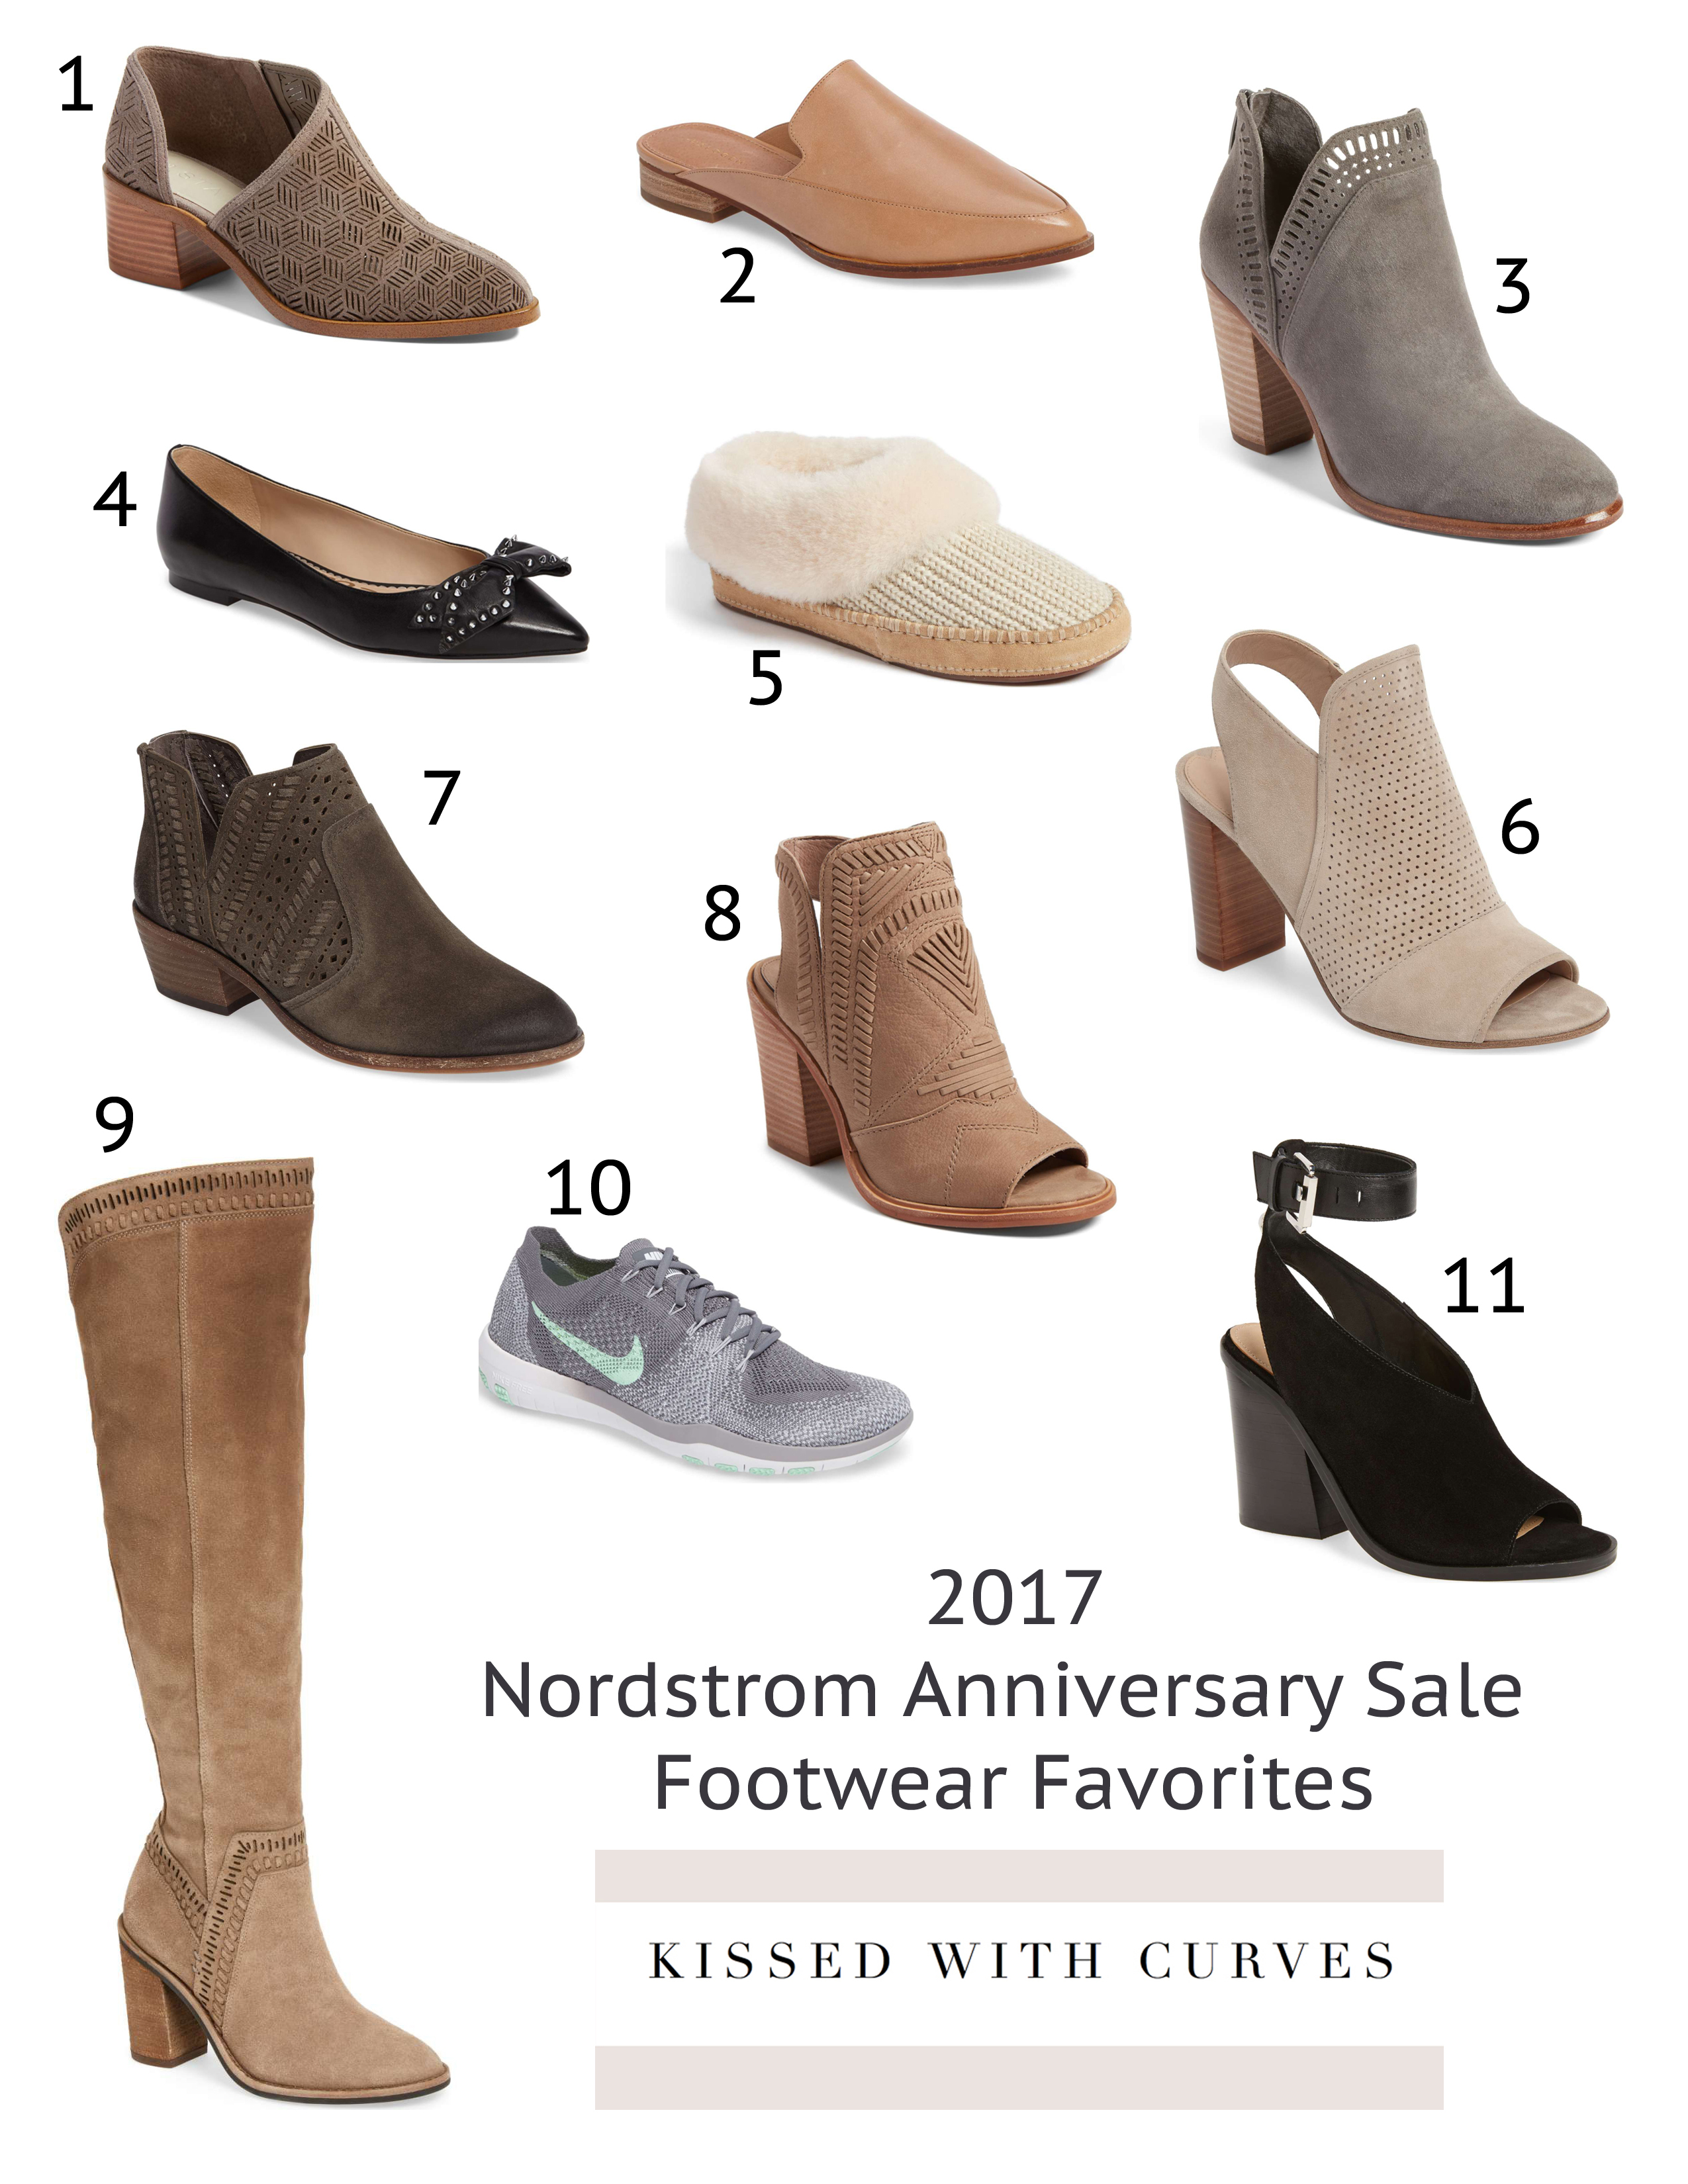 f5f35df57a8 2017 Nordstrom Anniversary Sale - Footwear Favorites - Kissed With Curves